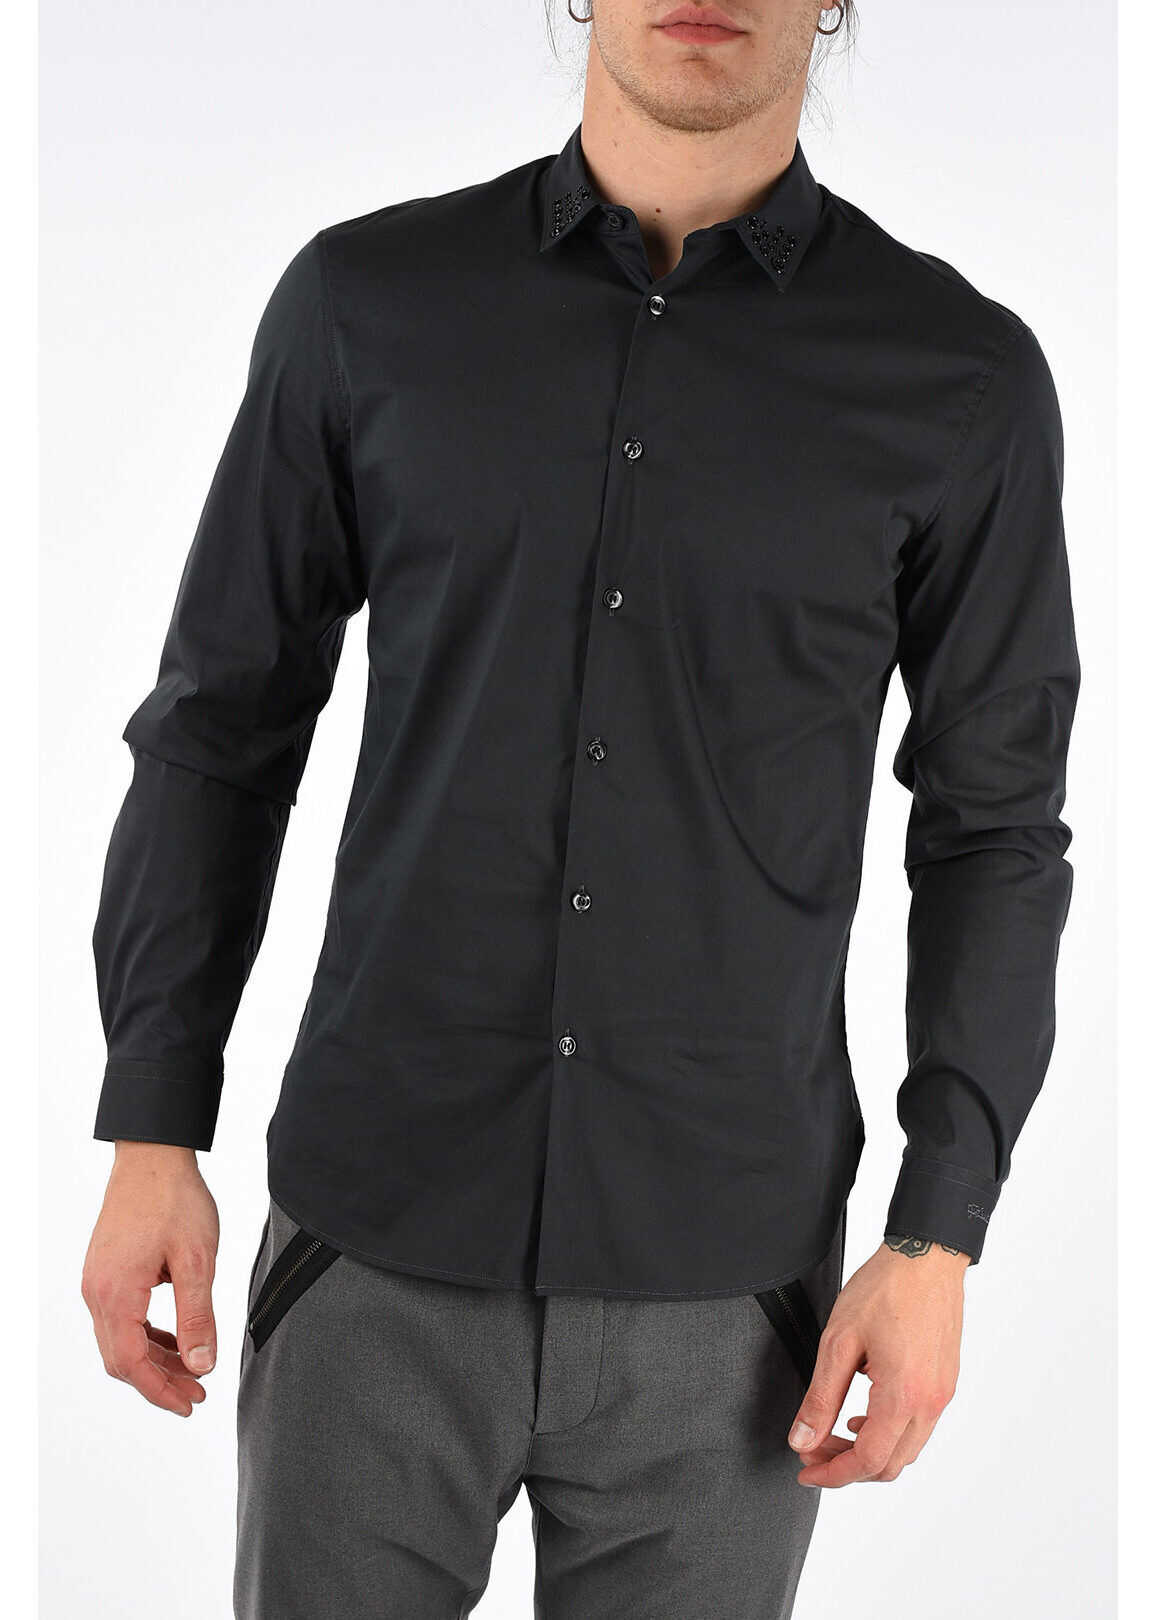 Just Cavalli Stretch Cotton and Nylon Shirt with Studs BLACK